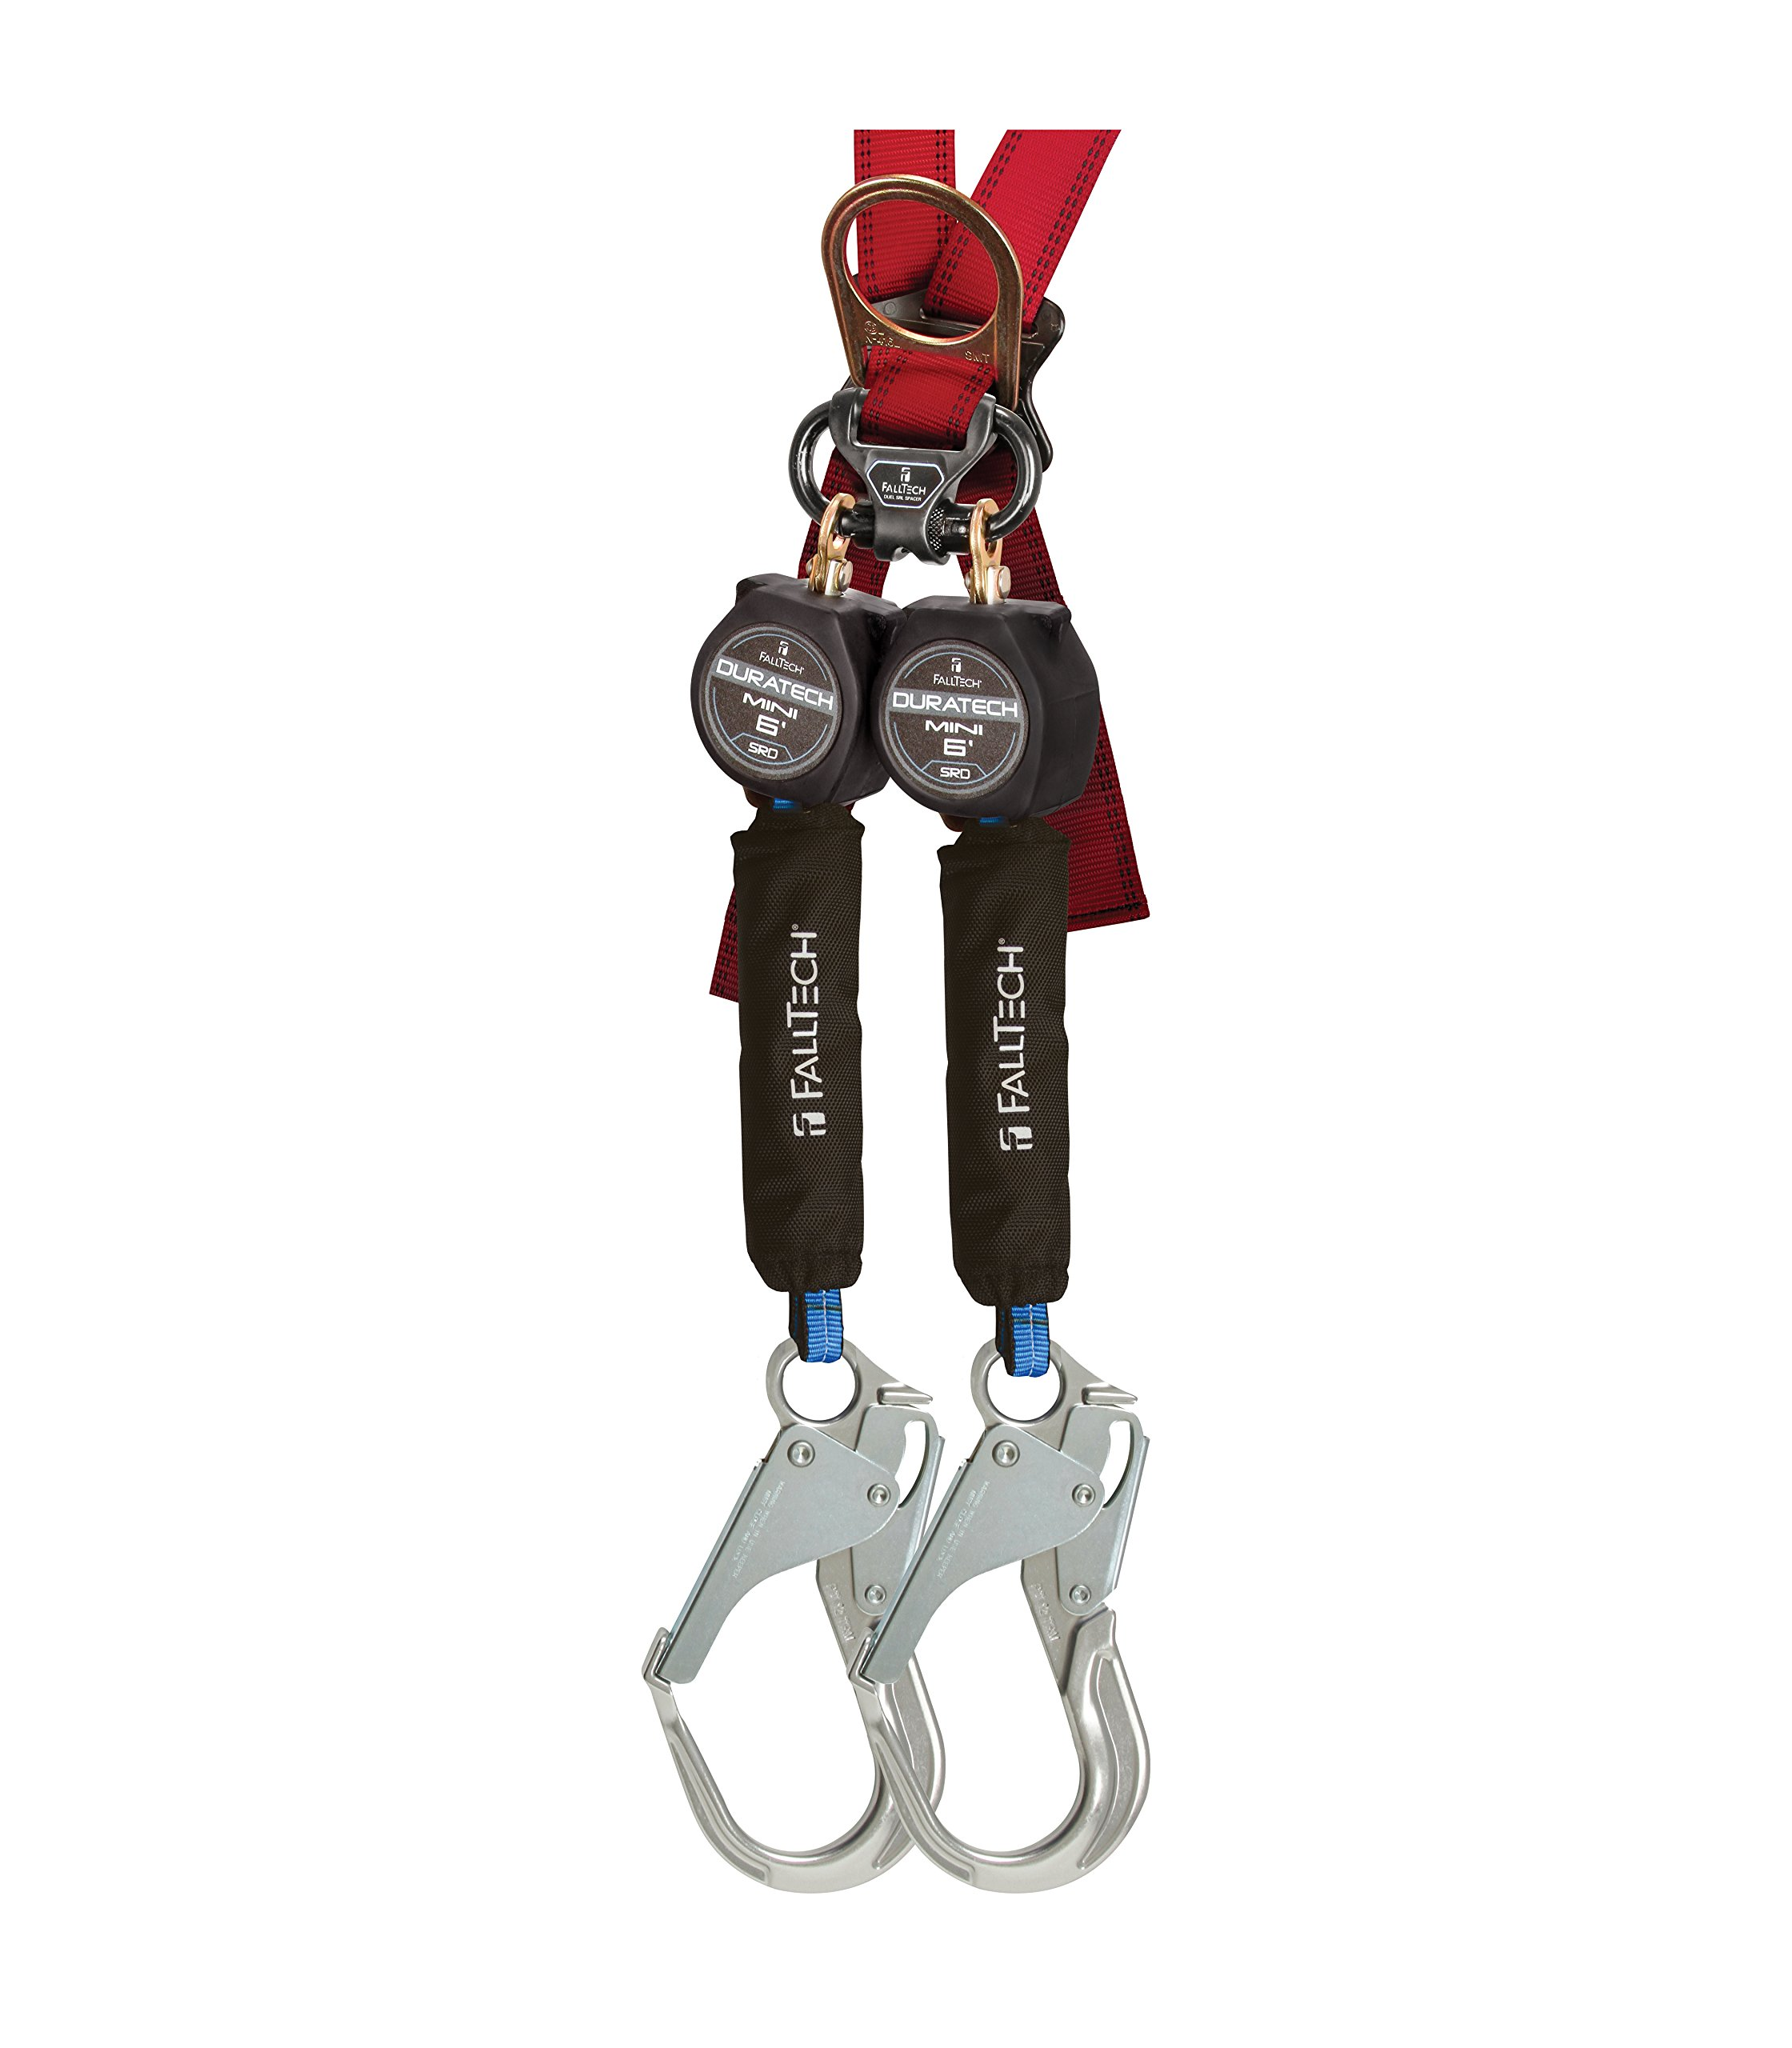 FallTech 72706TB5 MINI DuraTech 6' Compact Web SRL - 6' Mini SRD Twin-Leg Carabiner with Alignment Clip and Aluminum Rebar Hooks, 6', Black (2 Pack)